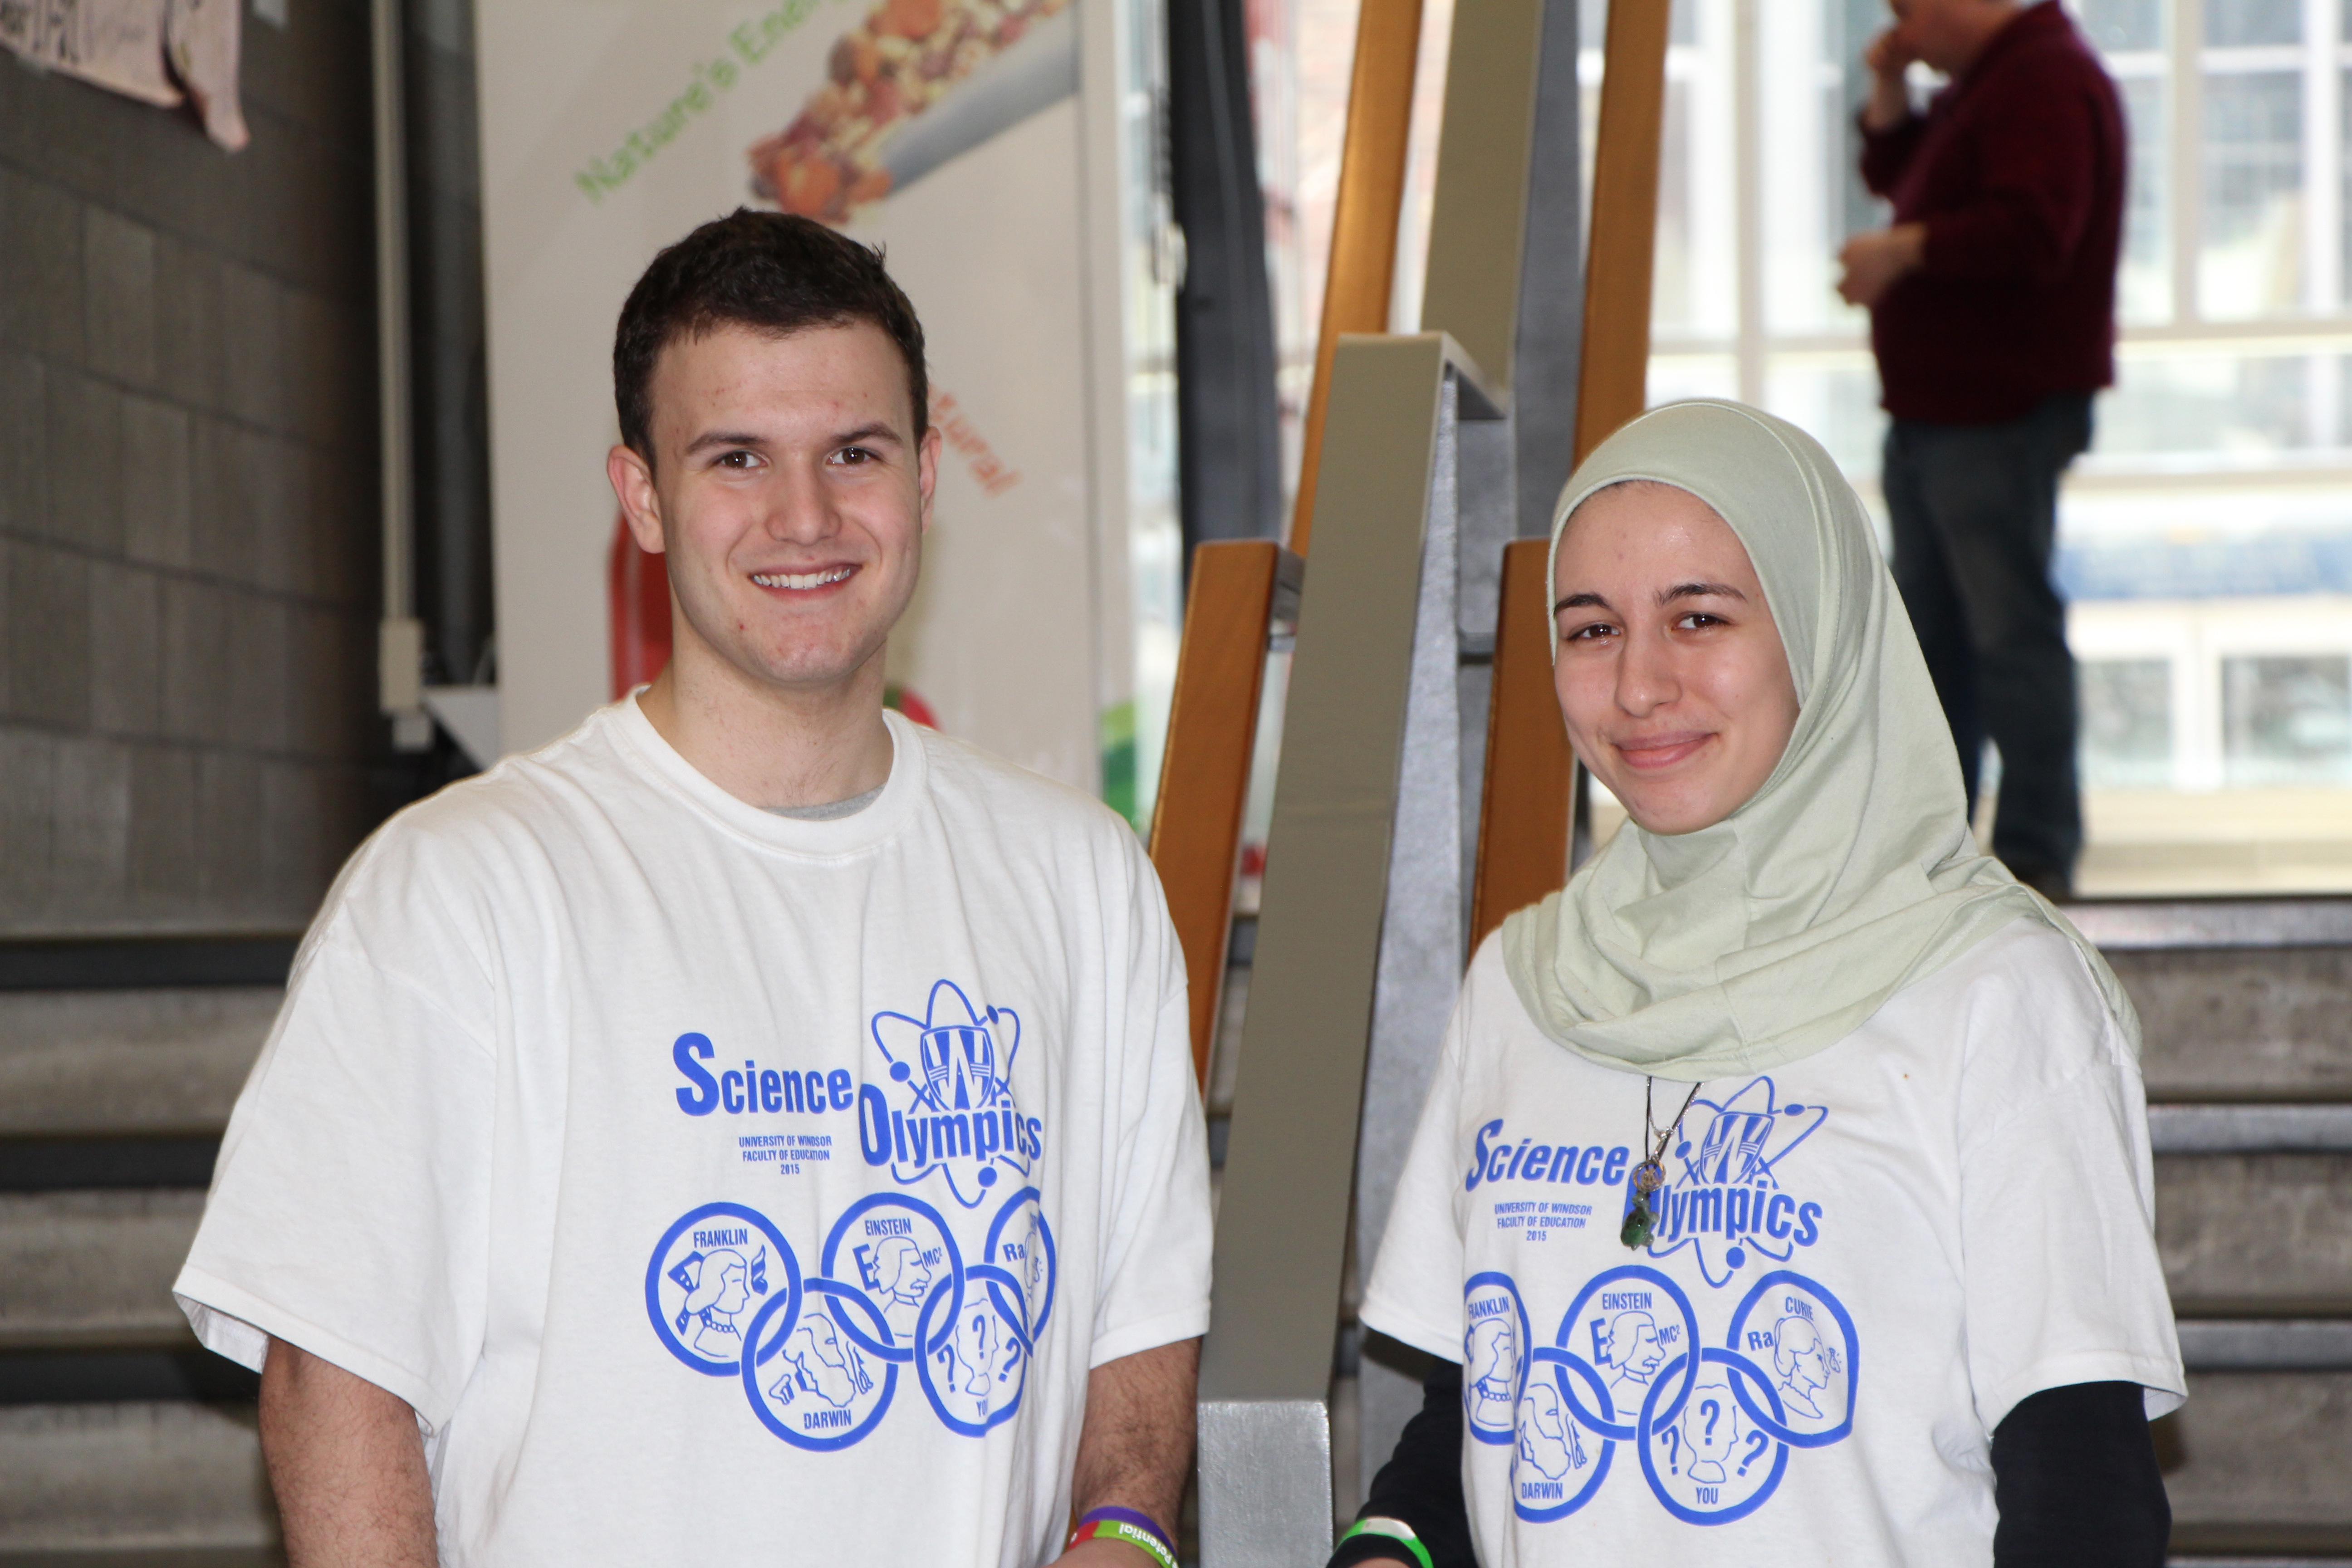 Maha Hammoud, L'Essor high school and Alex Popovic, Massey high school, two ambitious science students who competed in Science Olympiad.